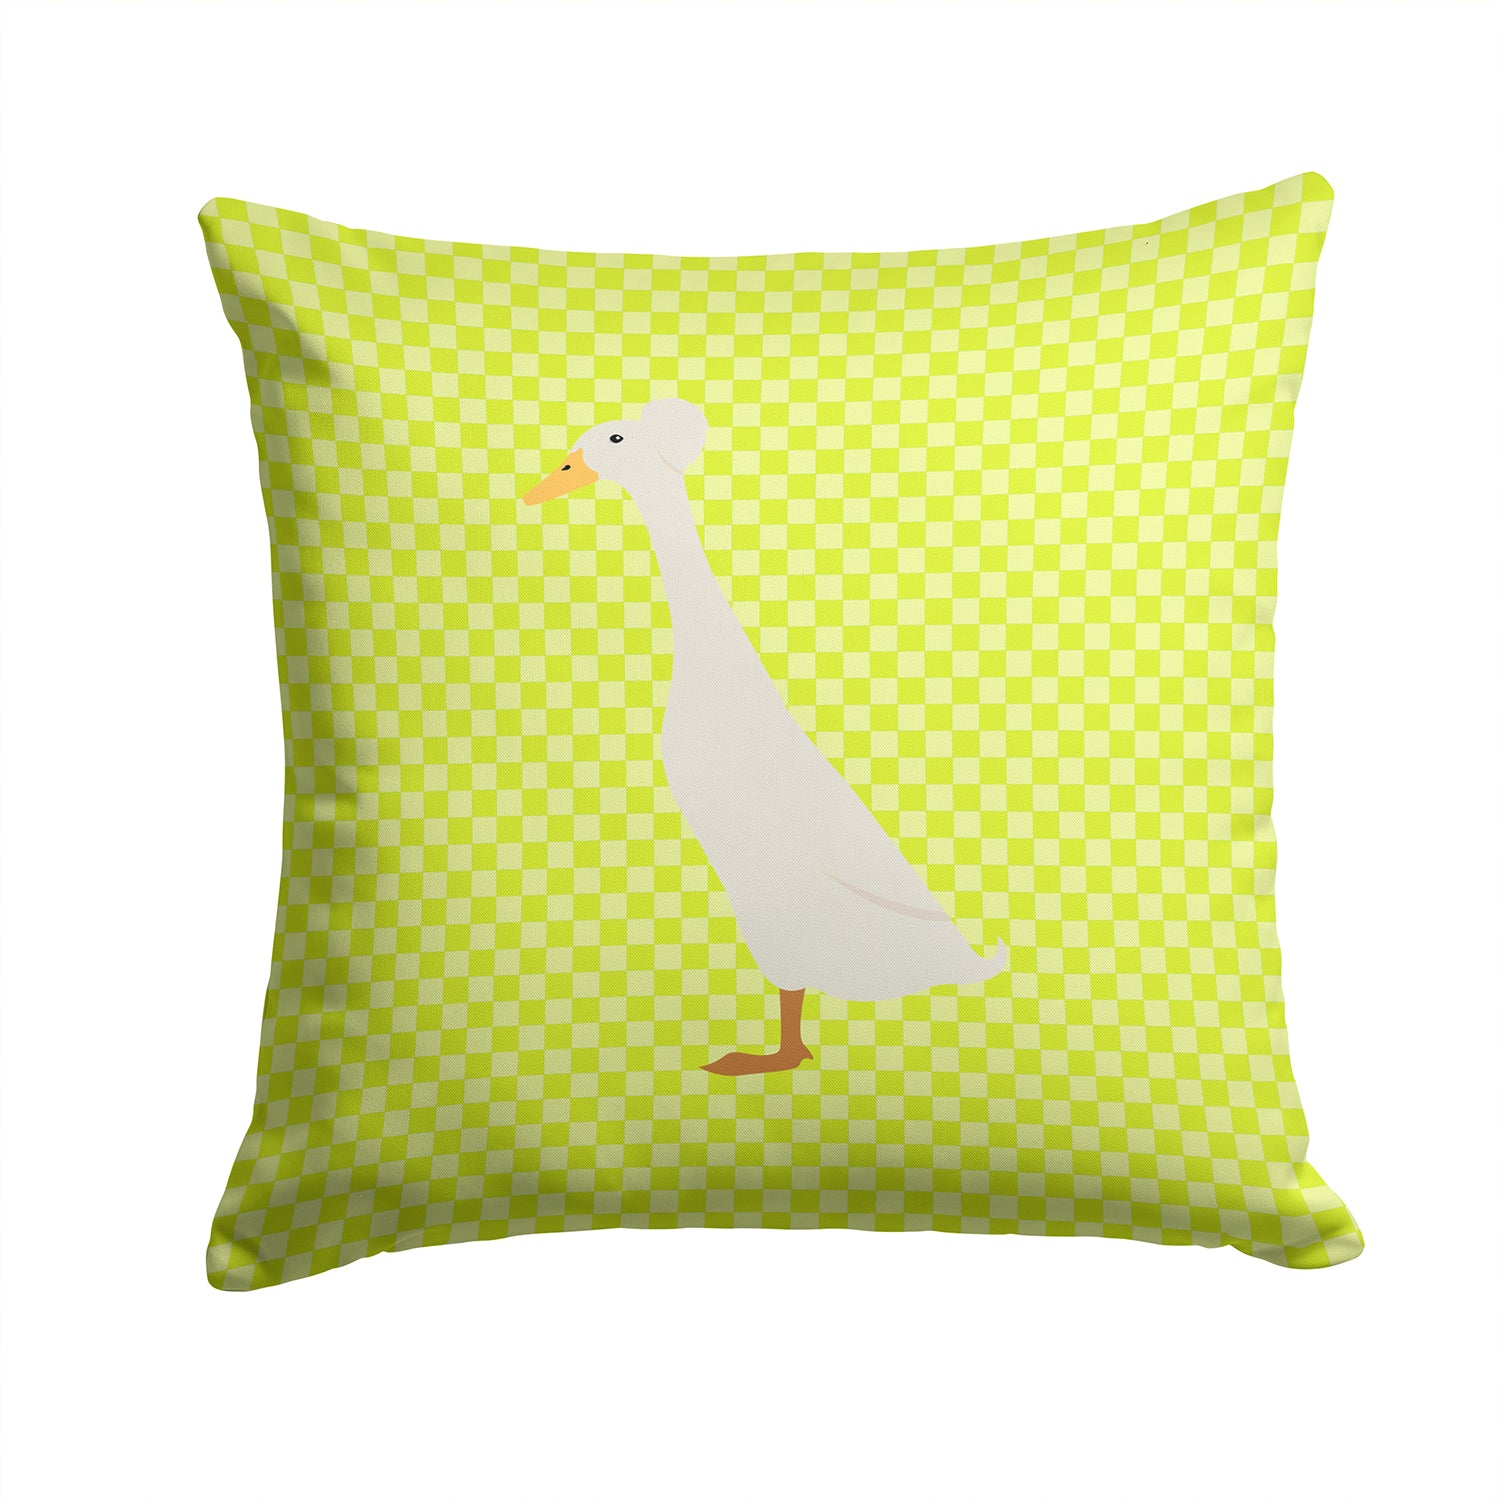 Bali Duck Green Fabric Decorative Pillow BB7685PW1414 by Caroline's Treasures